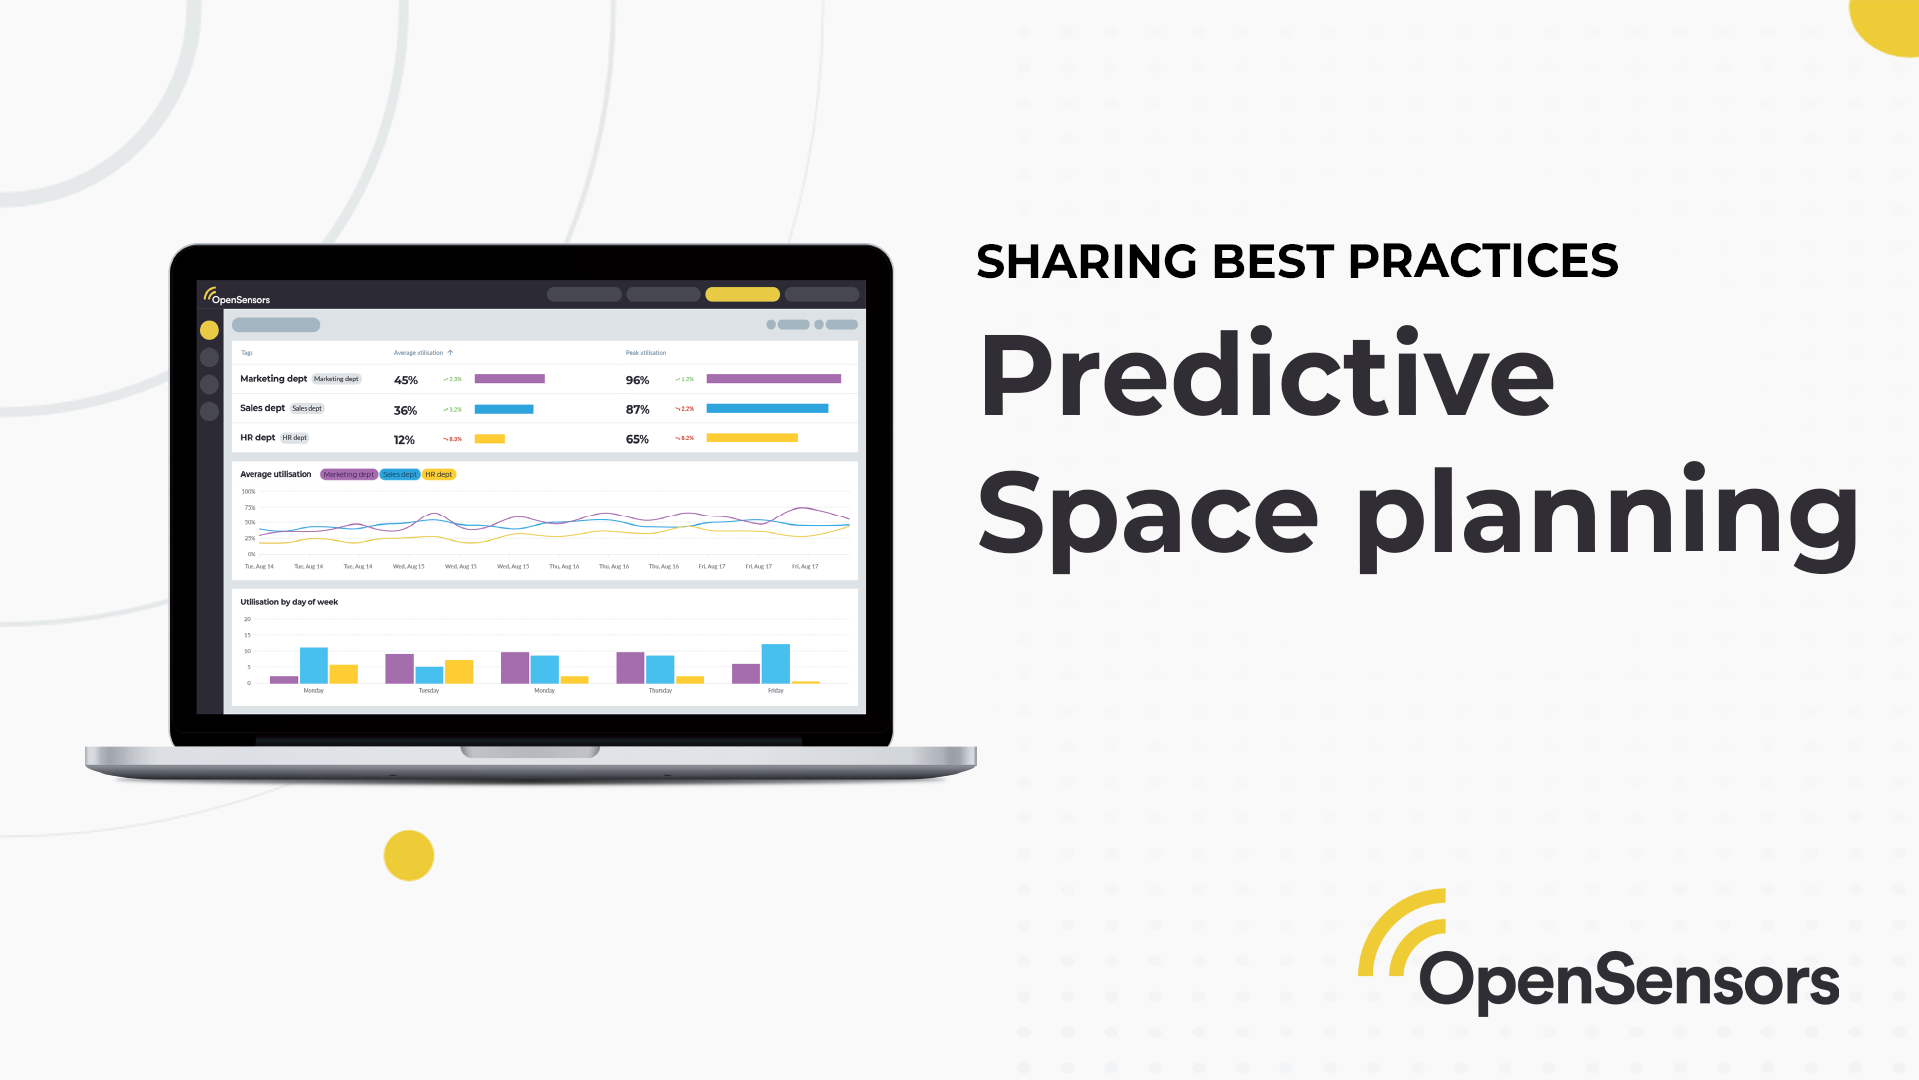 OpenSensors - Predictive Space Planning